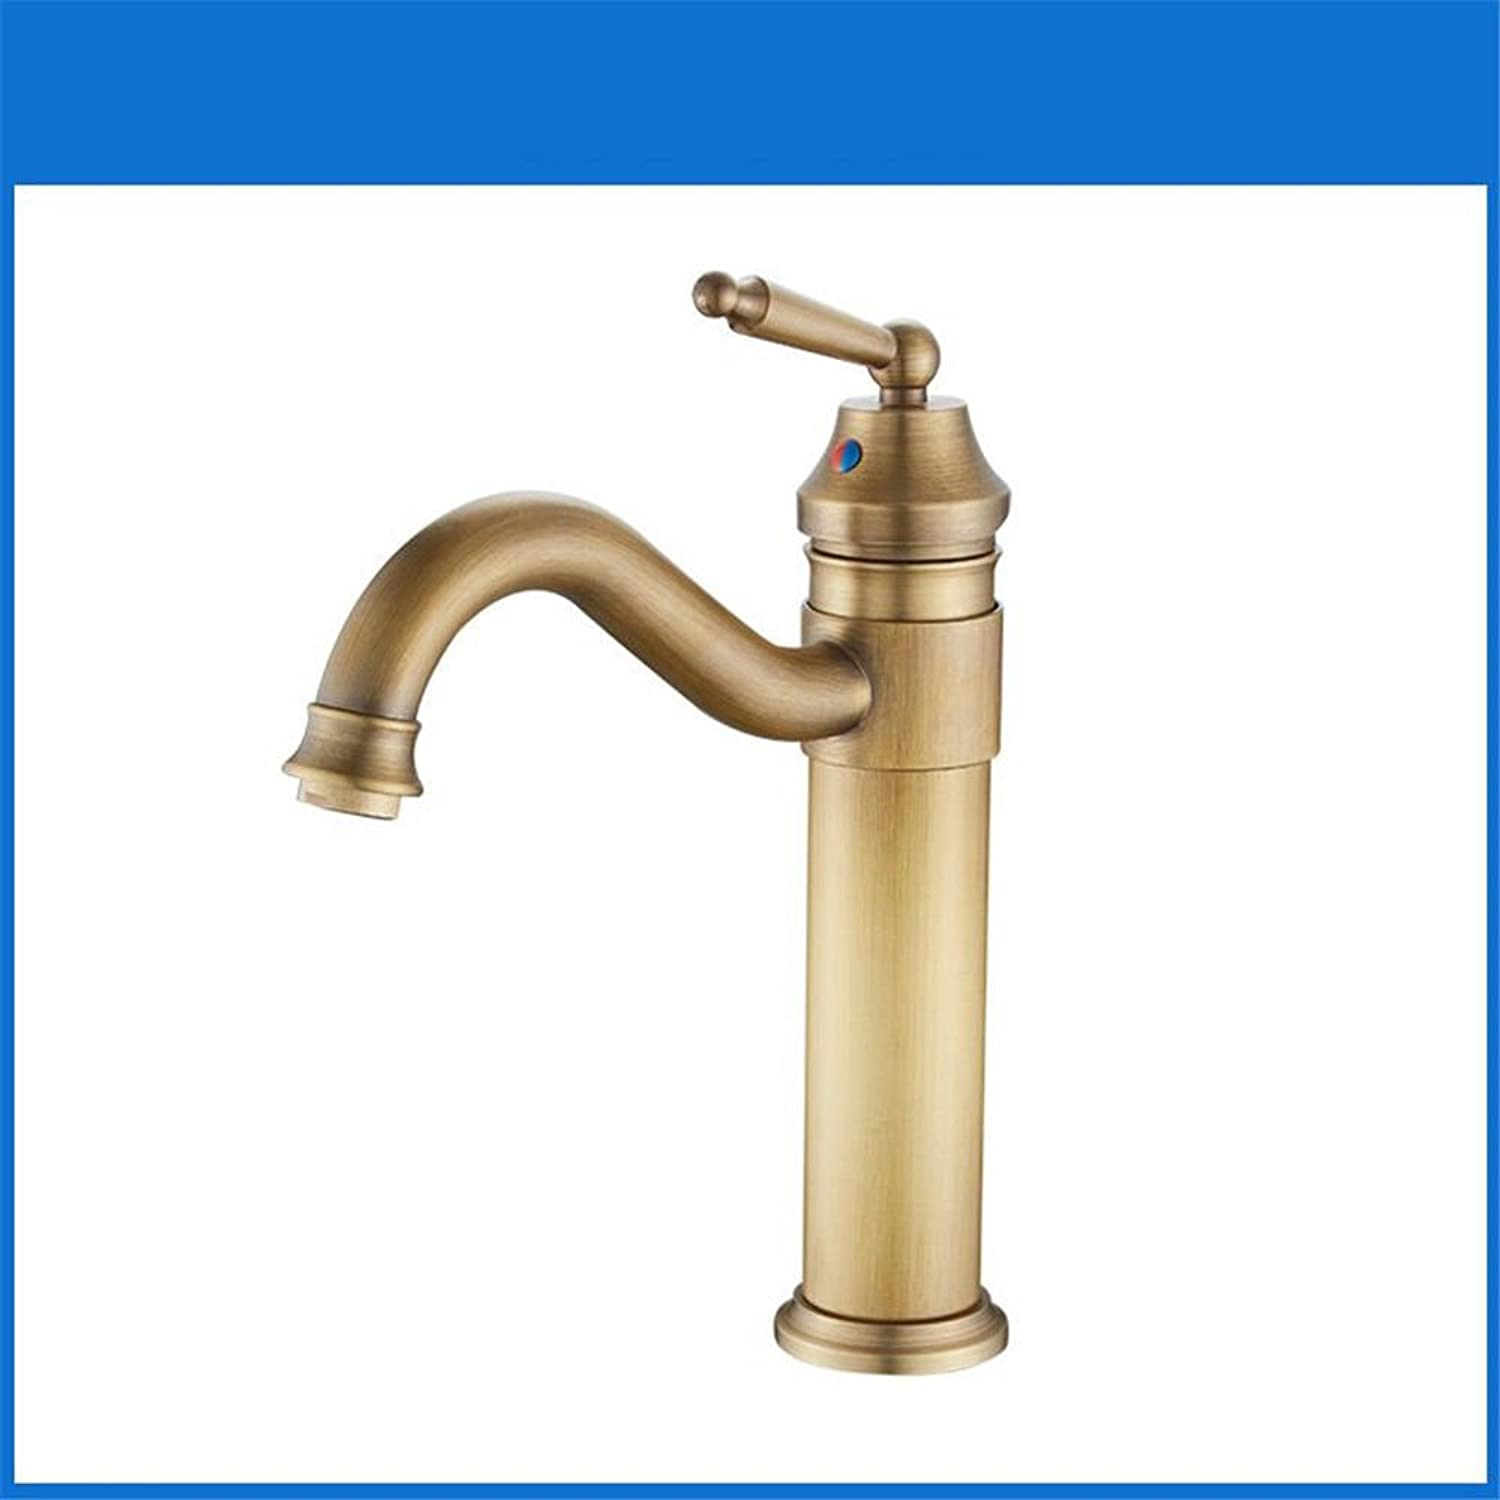 Hlluya Professional Sink Mixer Tap Kitchen Faucet Antique Bathroom Faucets full brass swivel basin mixer mixing of hot and cold water antique sink faucet high B